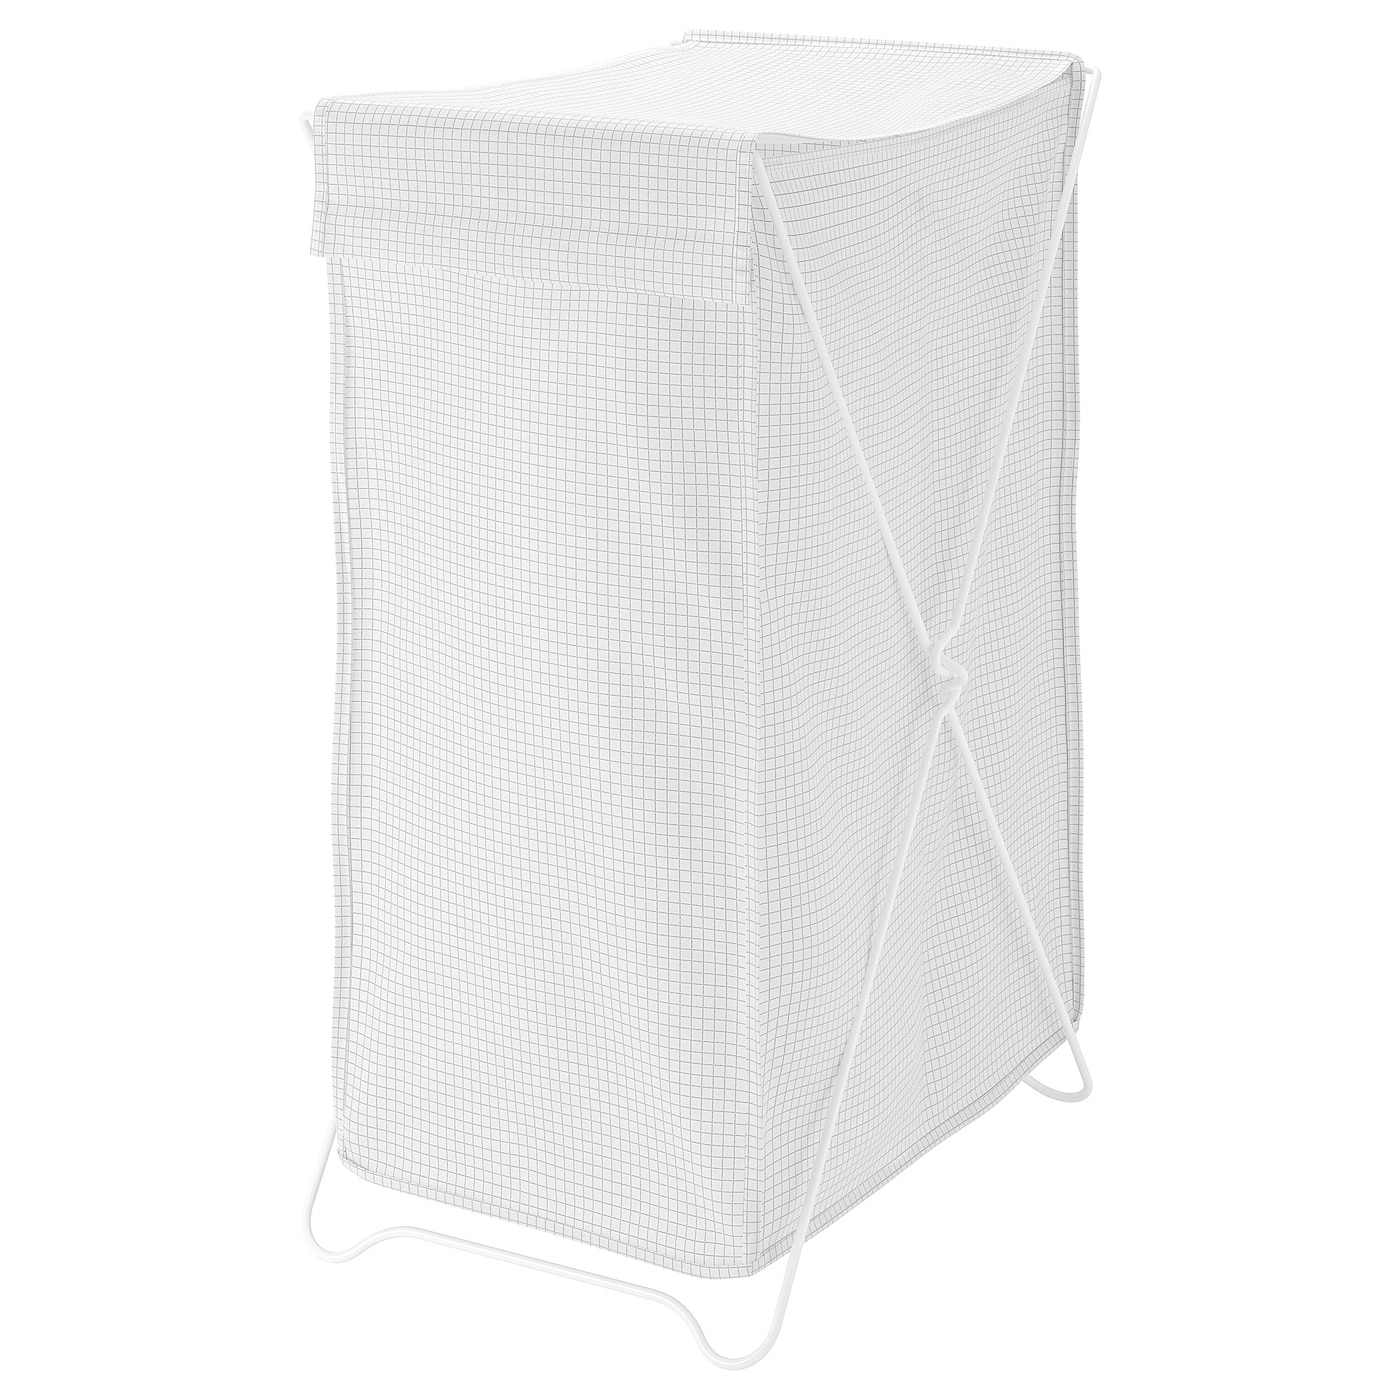 IKEA TORKIS laundry basket The two separate compartments help you to sort and organise your laundry.